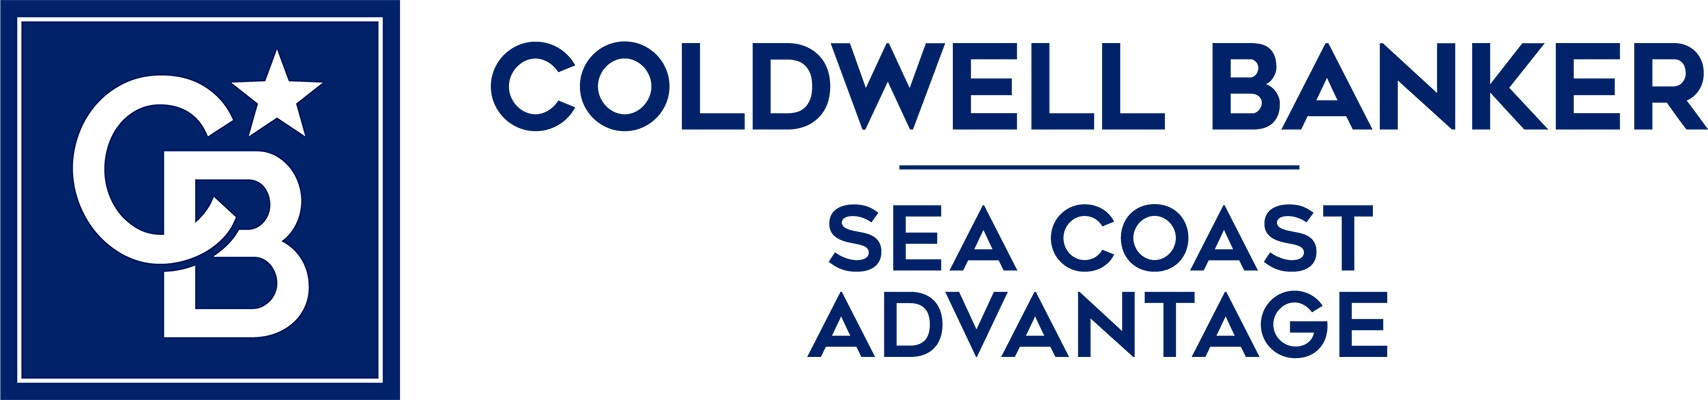 Tina Abraham - Coldwell Banker Sea Coast Advantage Realty Logo